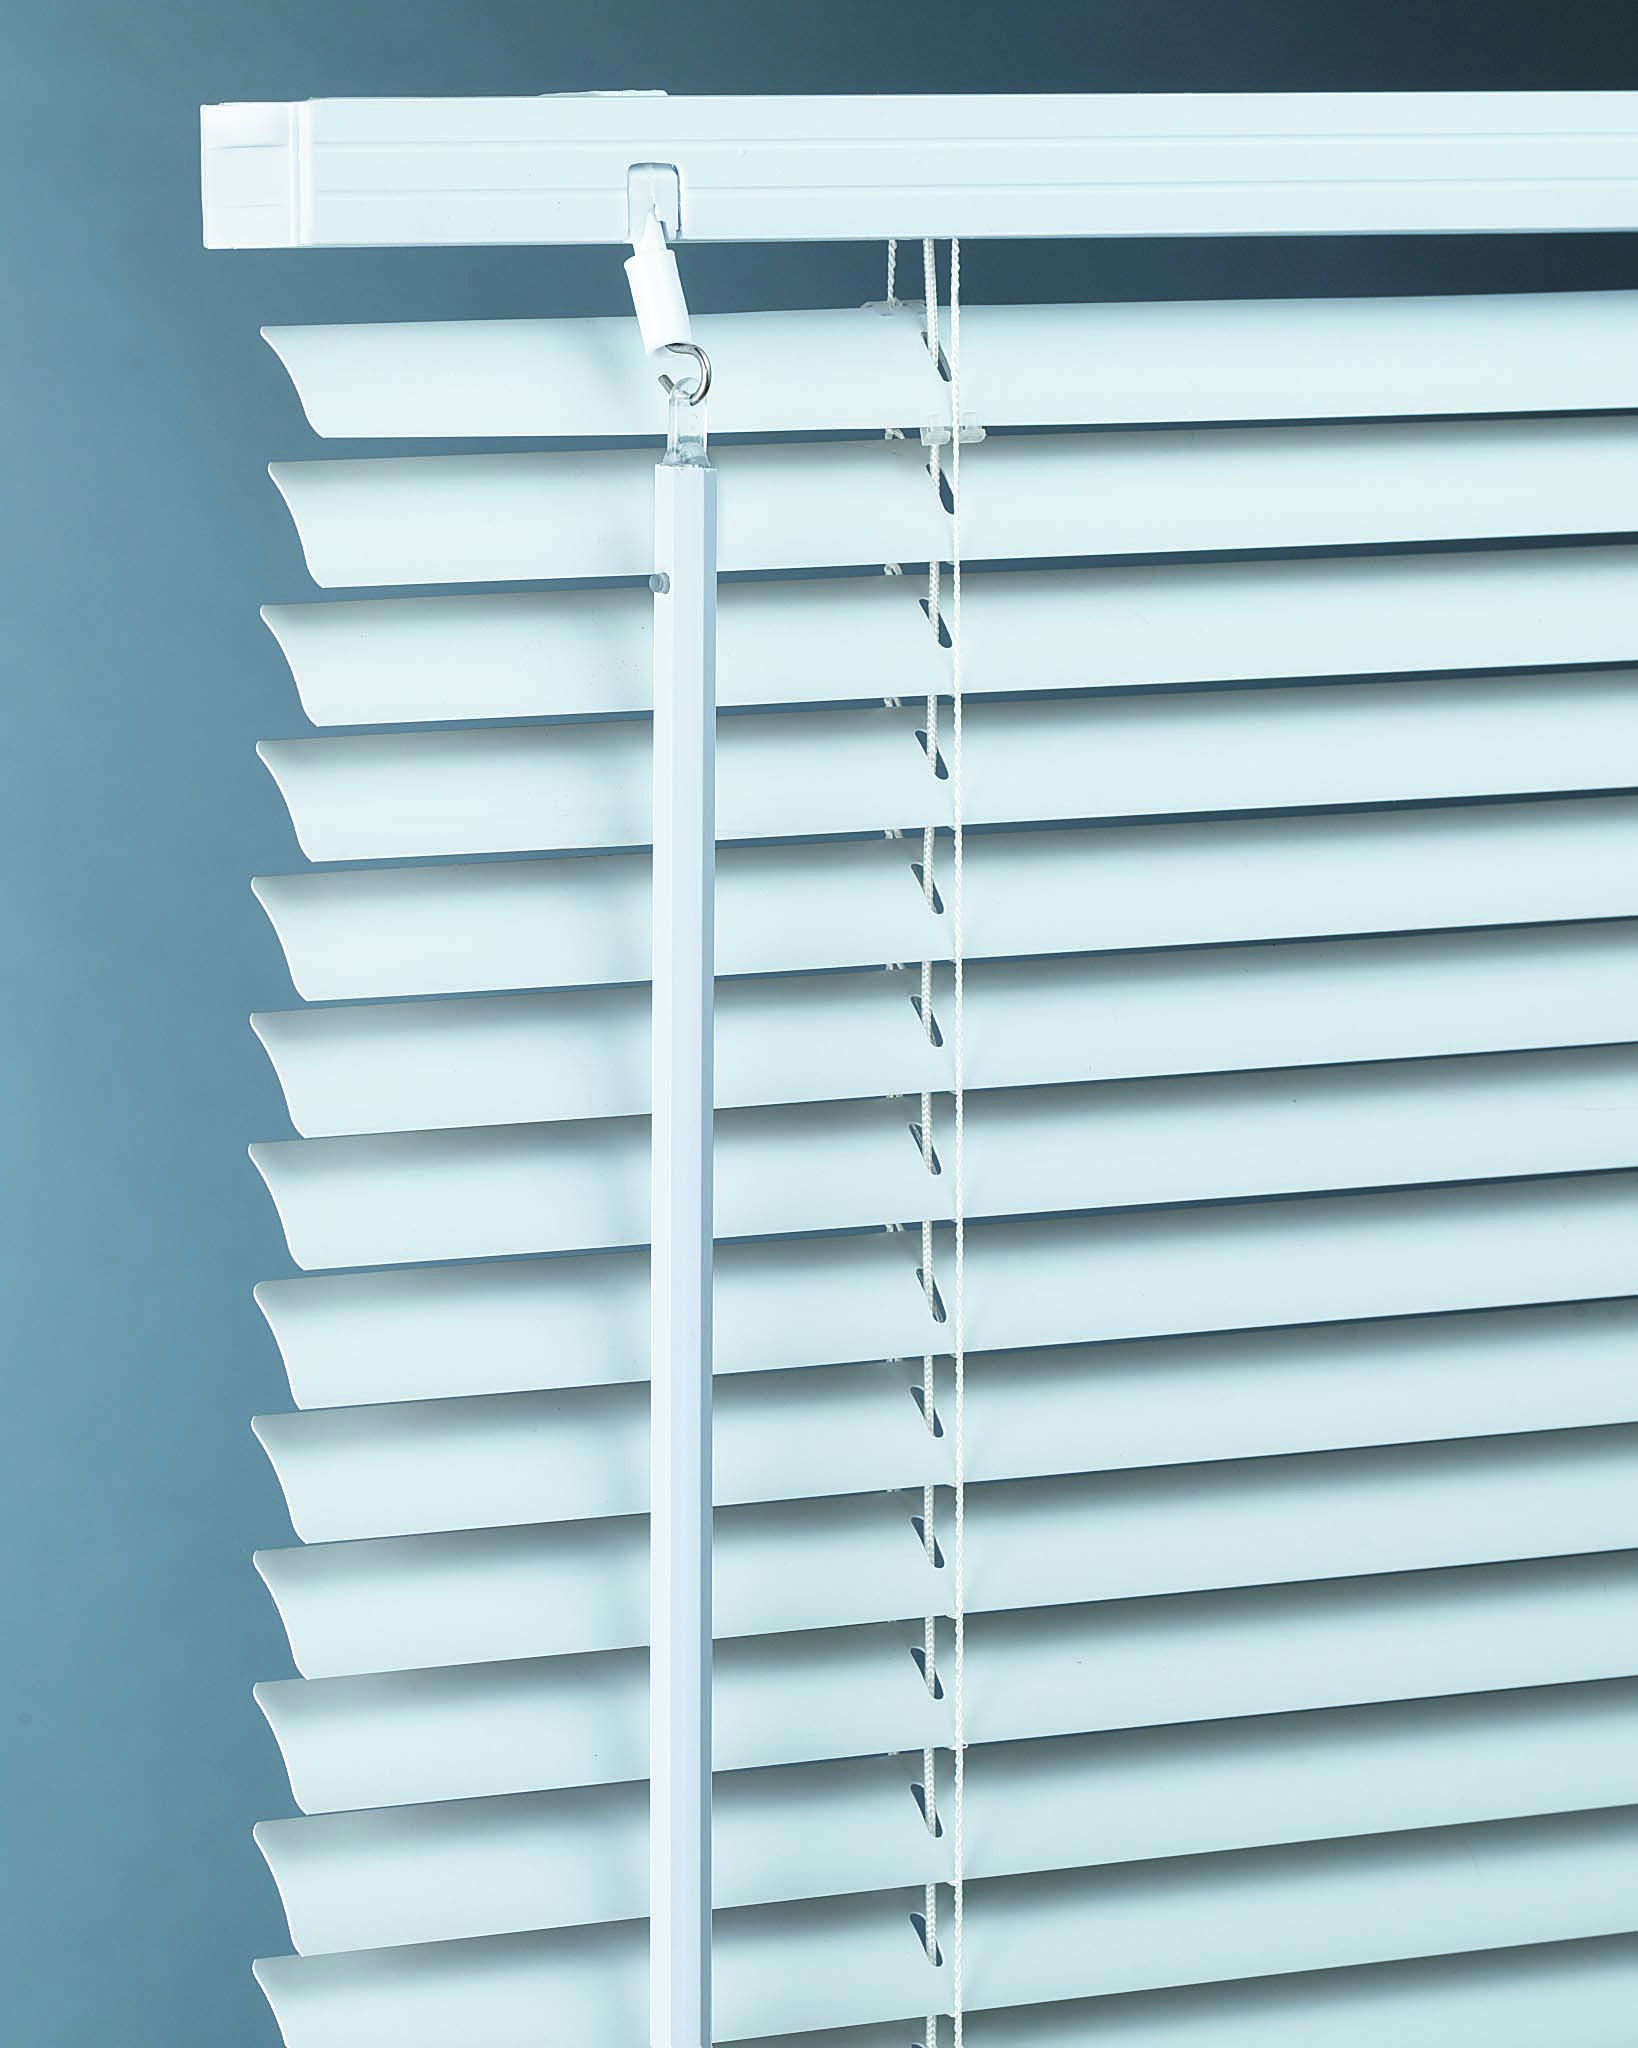 Effigy Of Most Common Types Of Window Blinds Blinds For Windows